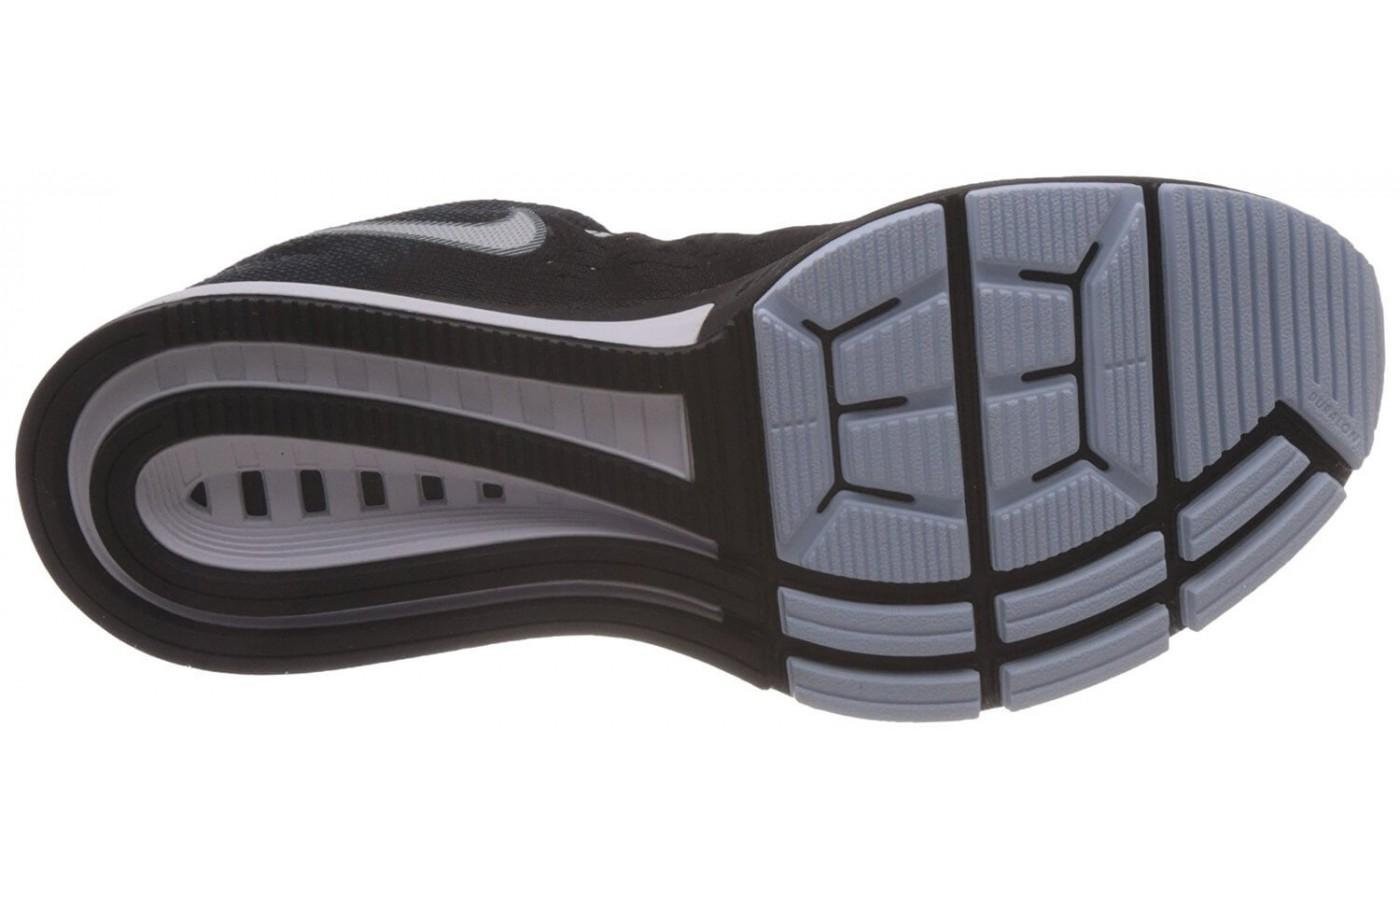 A highly stable and stylish outsole can be seen on the Nike Air Zoom Vomero 10.